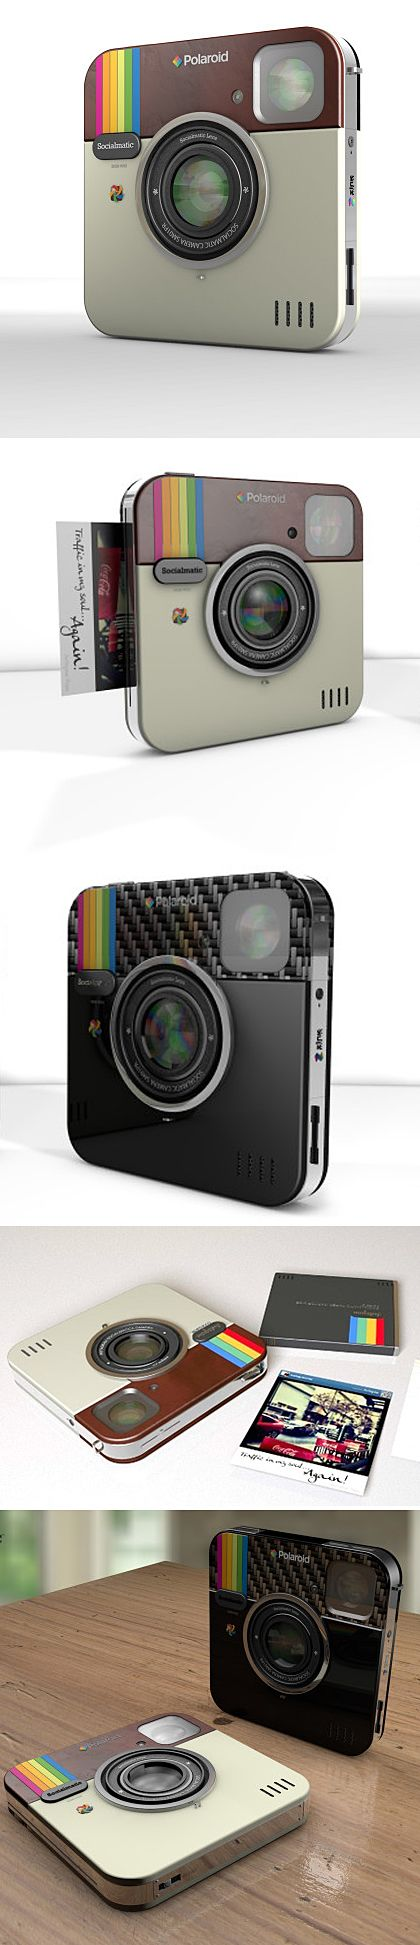 """Socialmatic : Cool Instagram-Inspired Camera"" ---- I'm sorry, but no. Instagram's logo is from the Rainbow edition poloroids. not the other way around... this new camera might be designed after the insta logo, but it's a rainbow. Still cool, though."